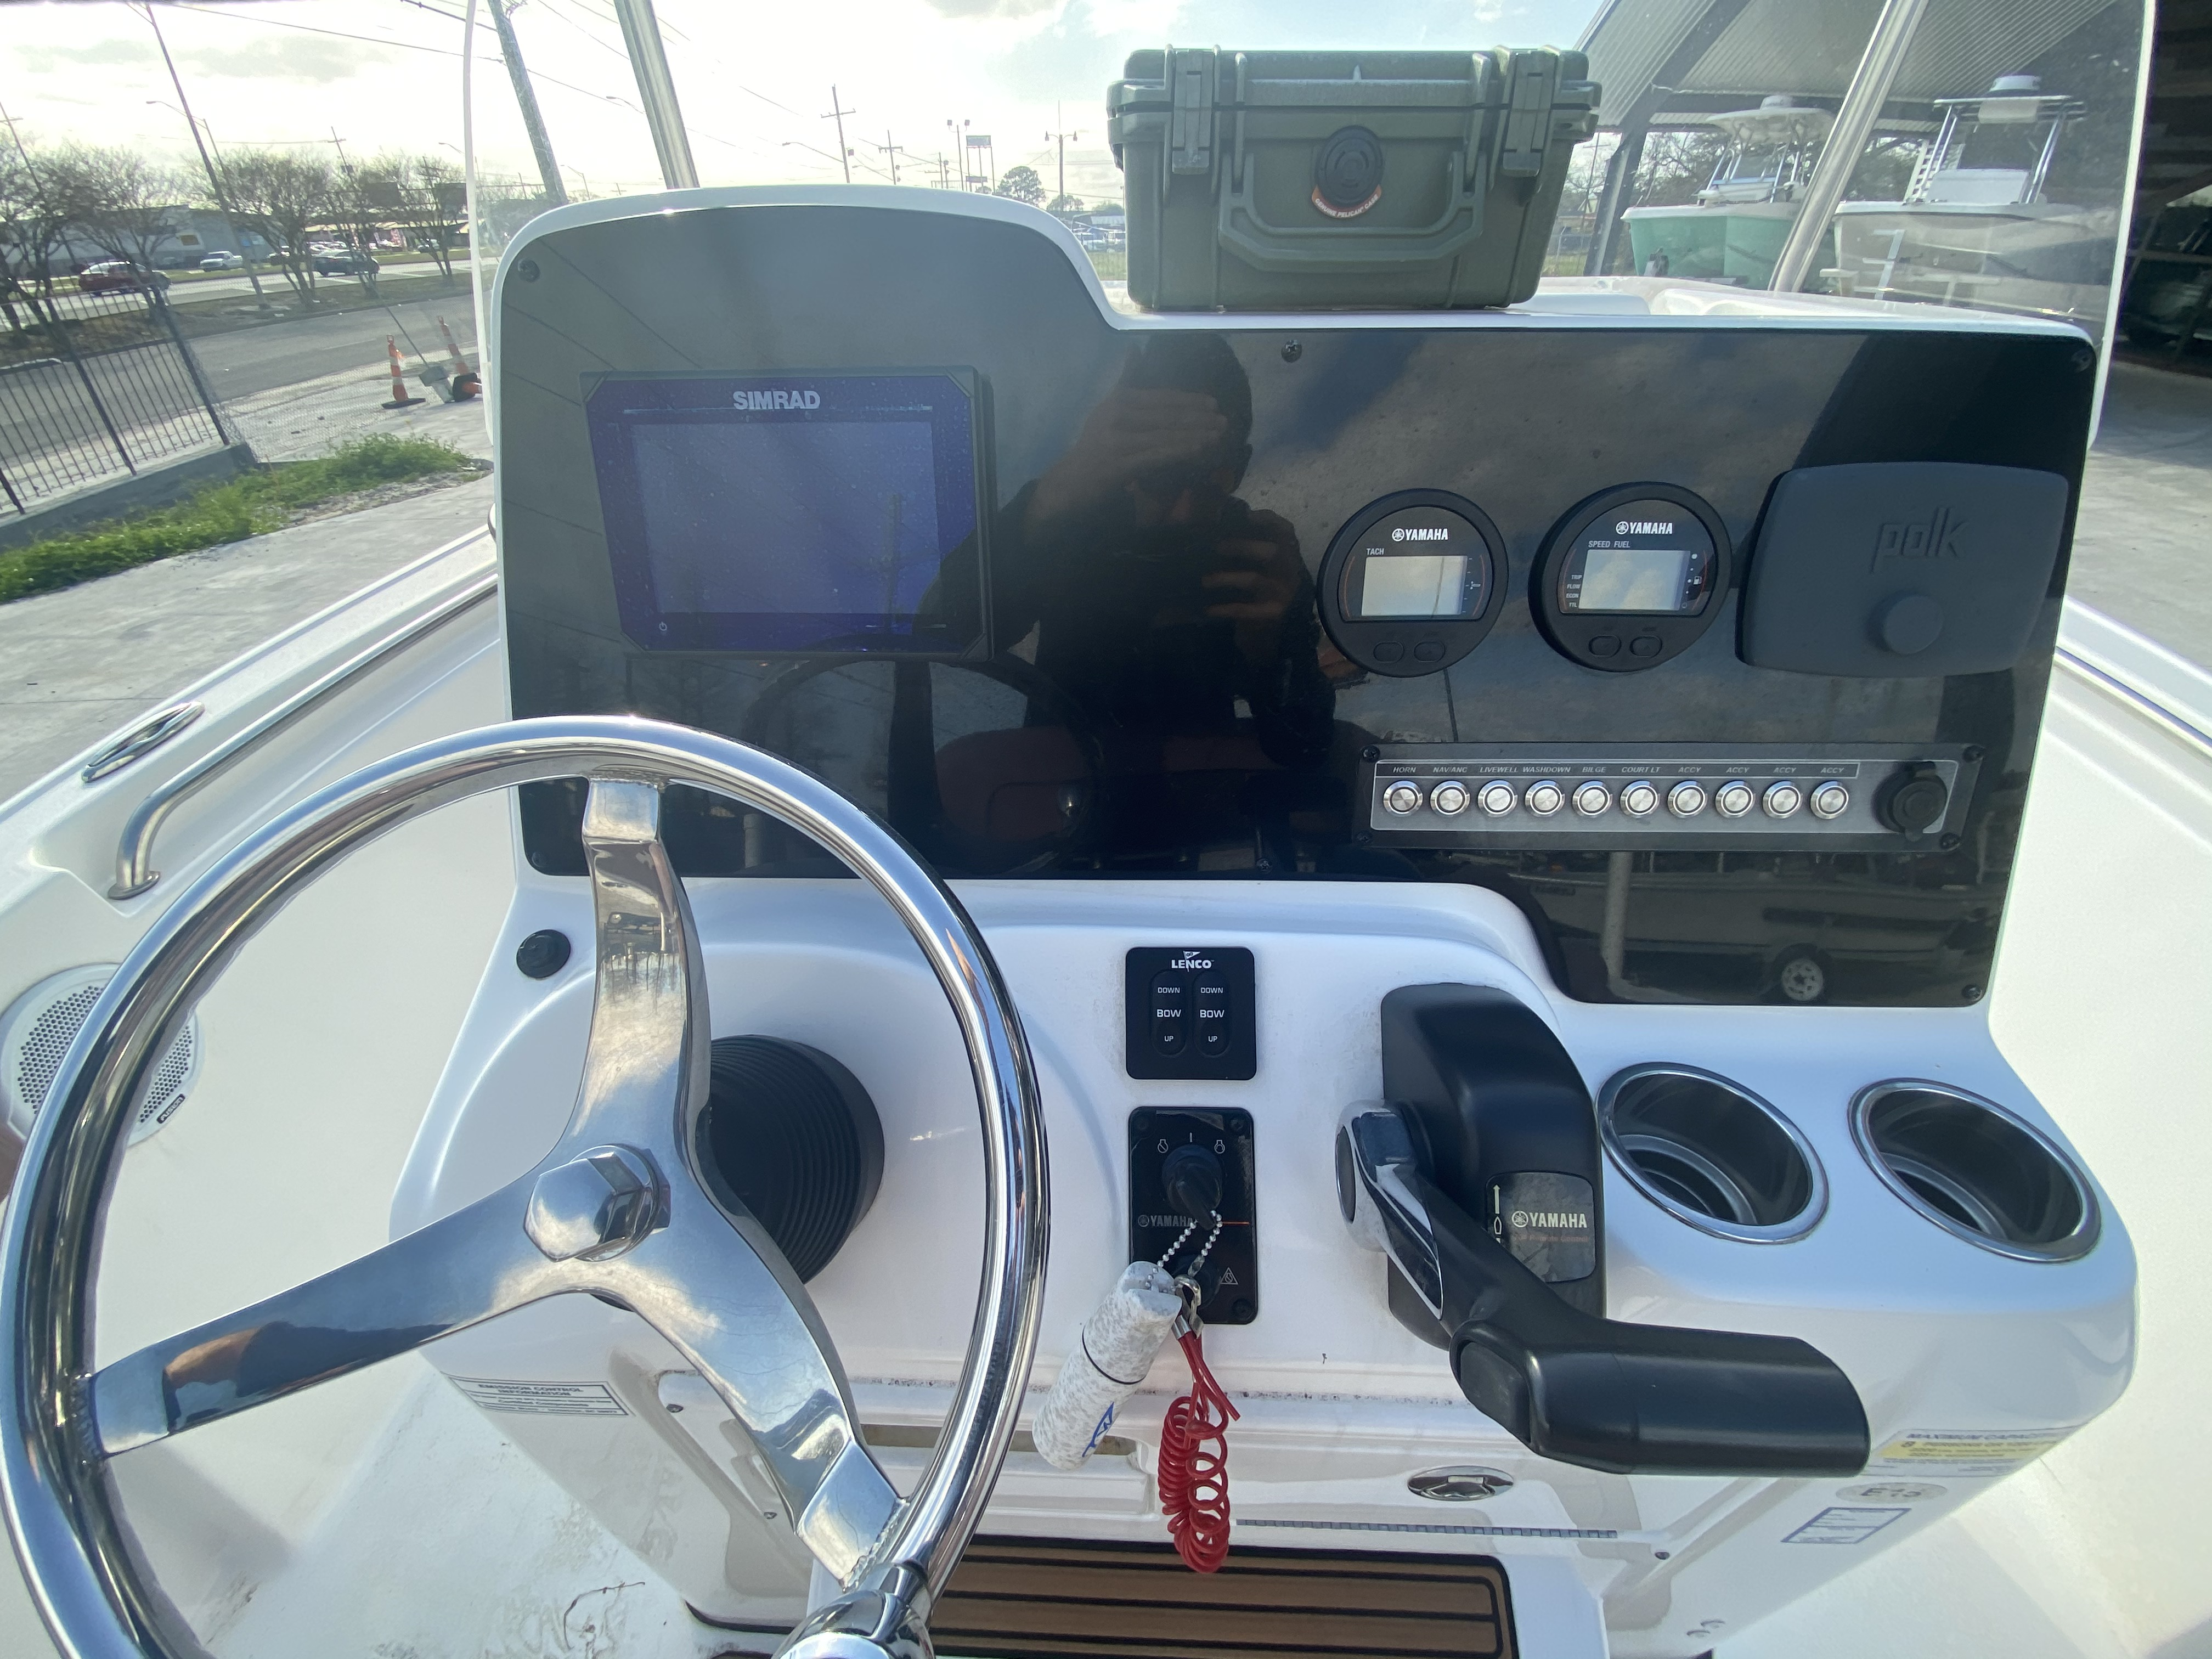 2017 Tidewater boat for sale, model of the boat is 210 & Image # 8 of 19